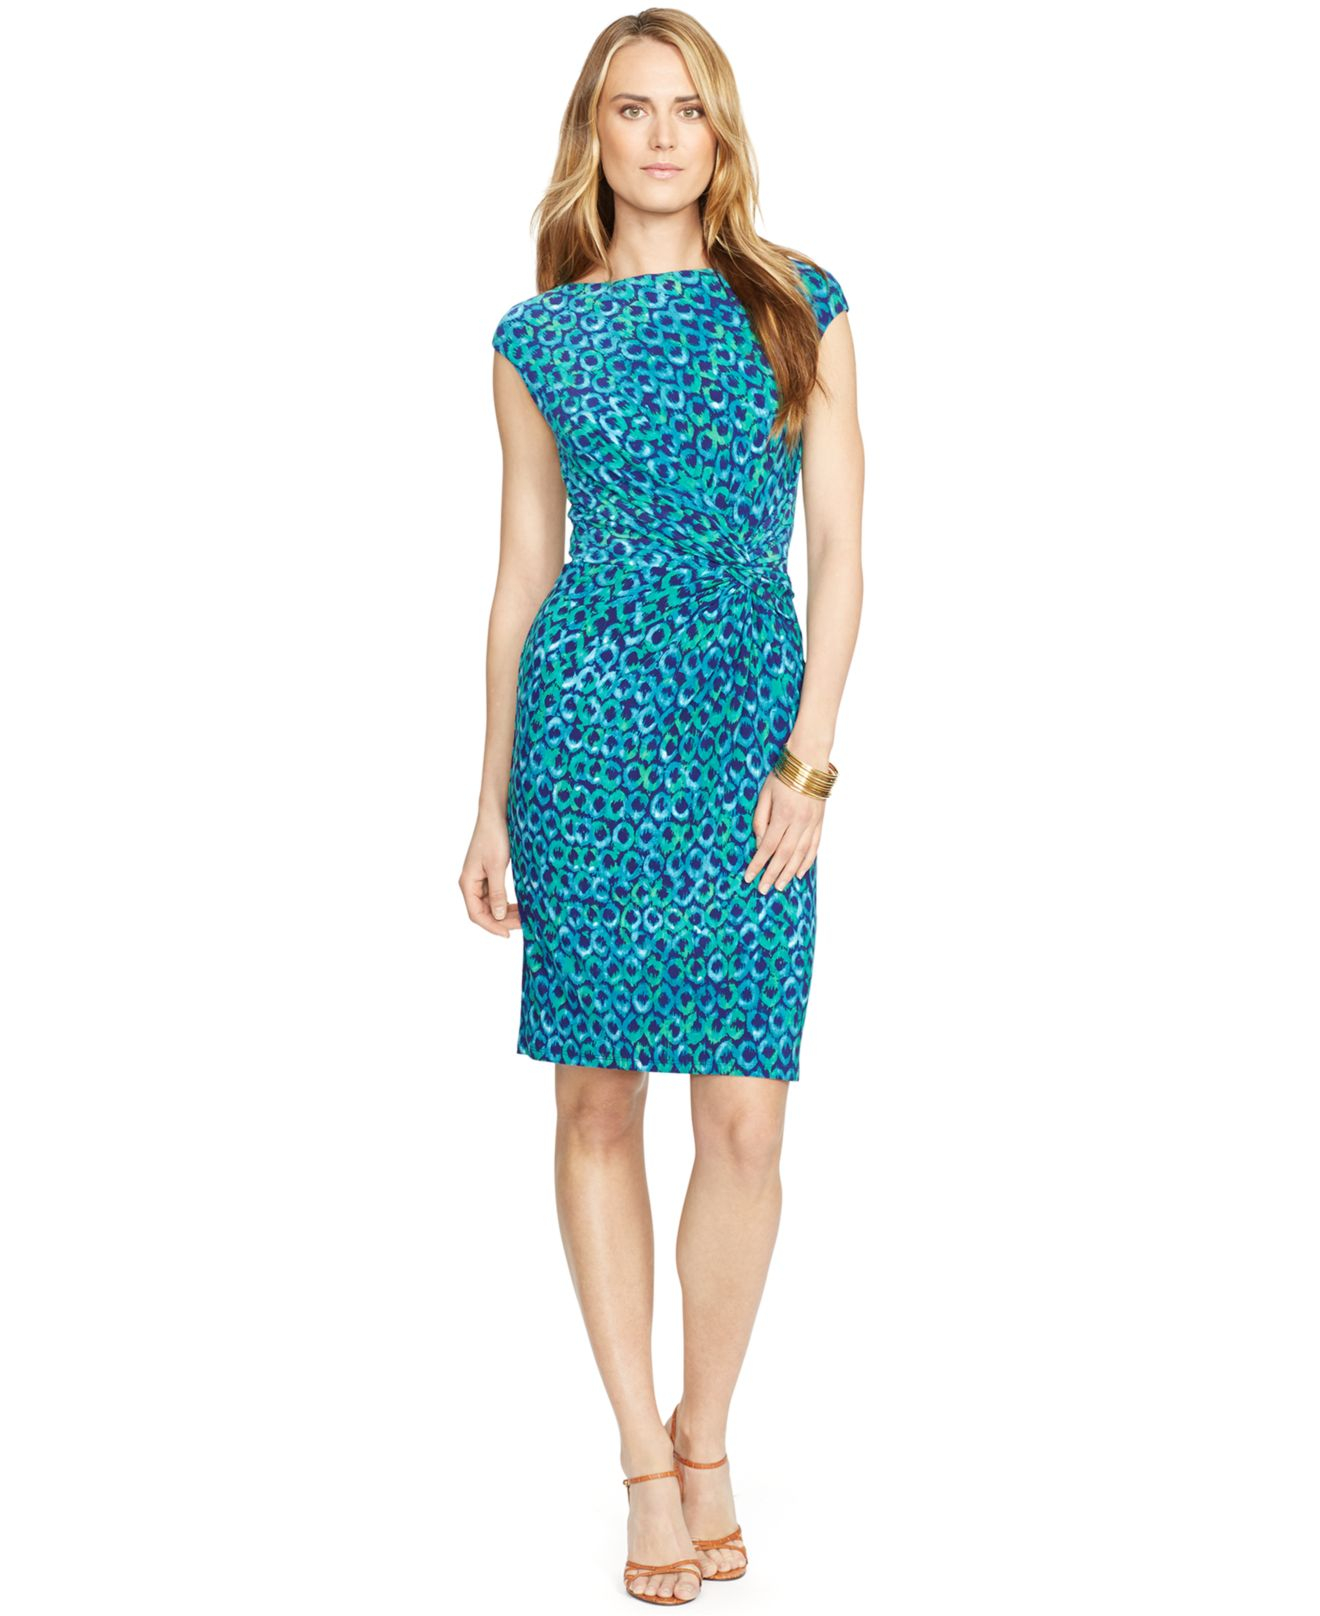 Lauren Ralph Lauren Väskor : Lyst lauren by ralph printed jersey dress in blue